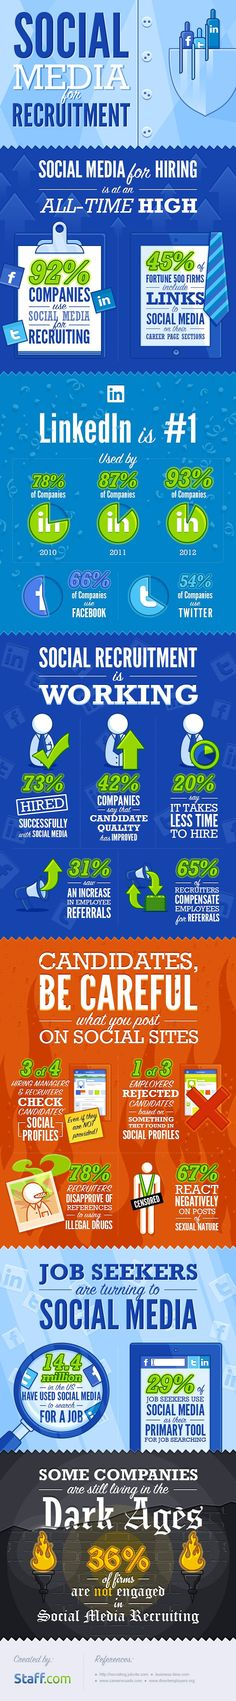 #SocialMedia Recruitment via @angela4design  #infographic #careers